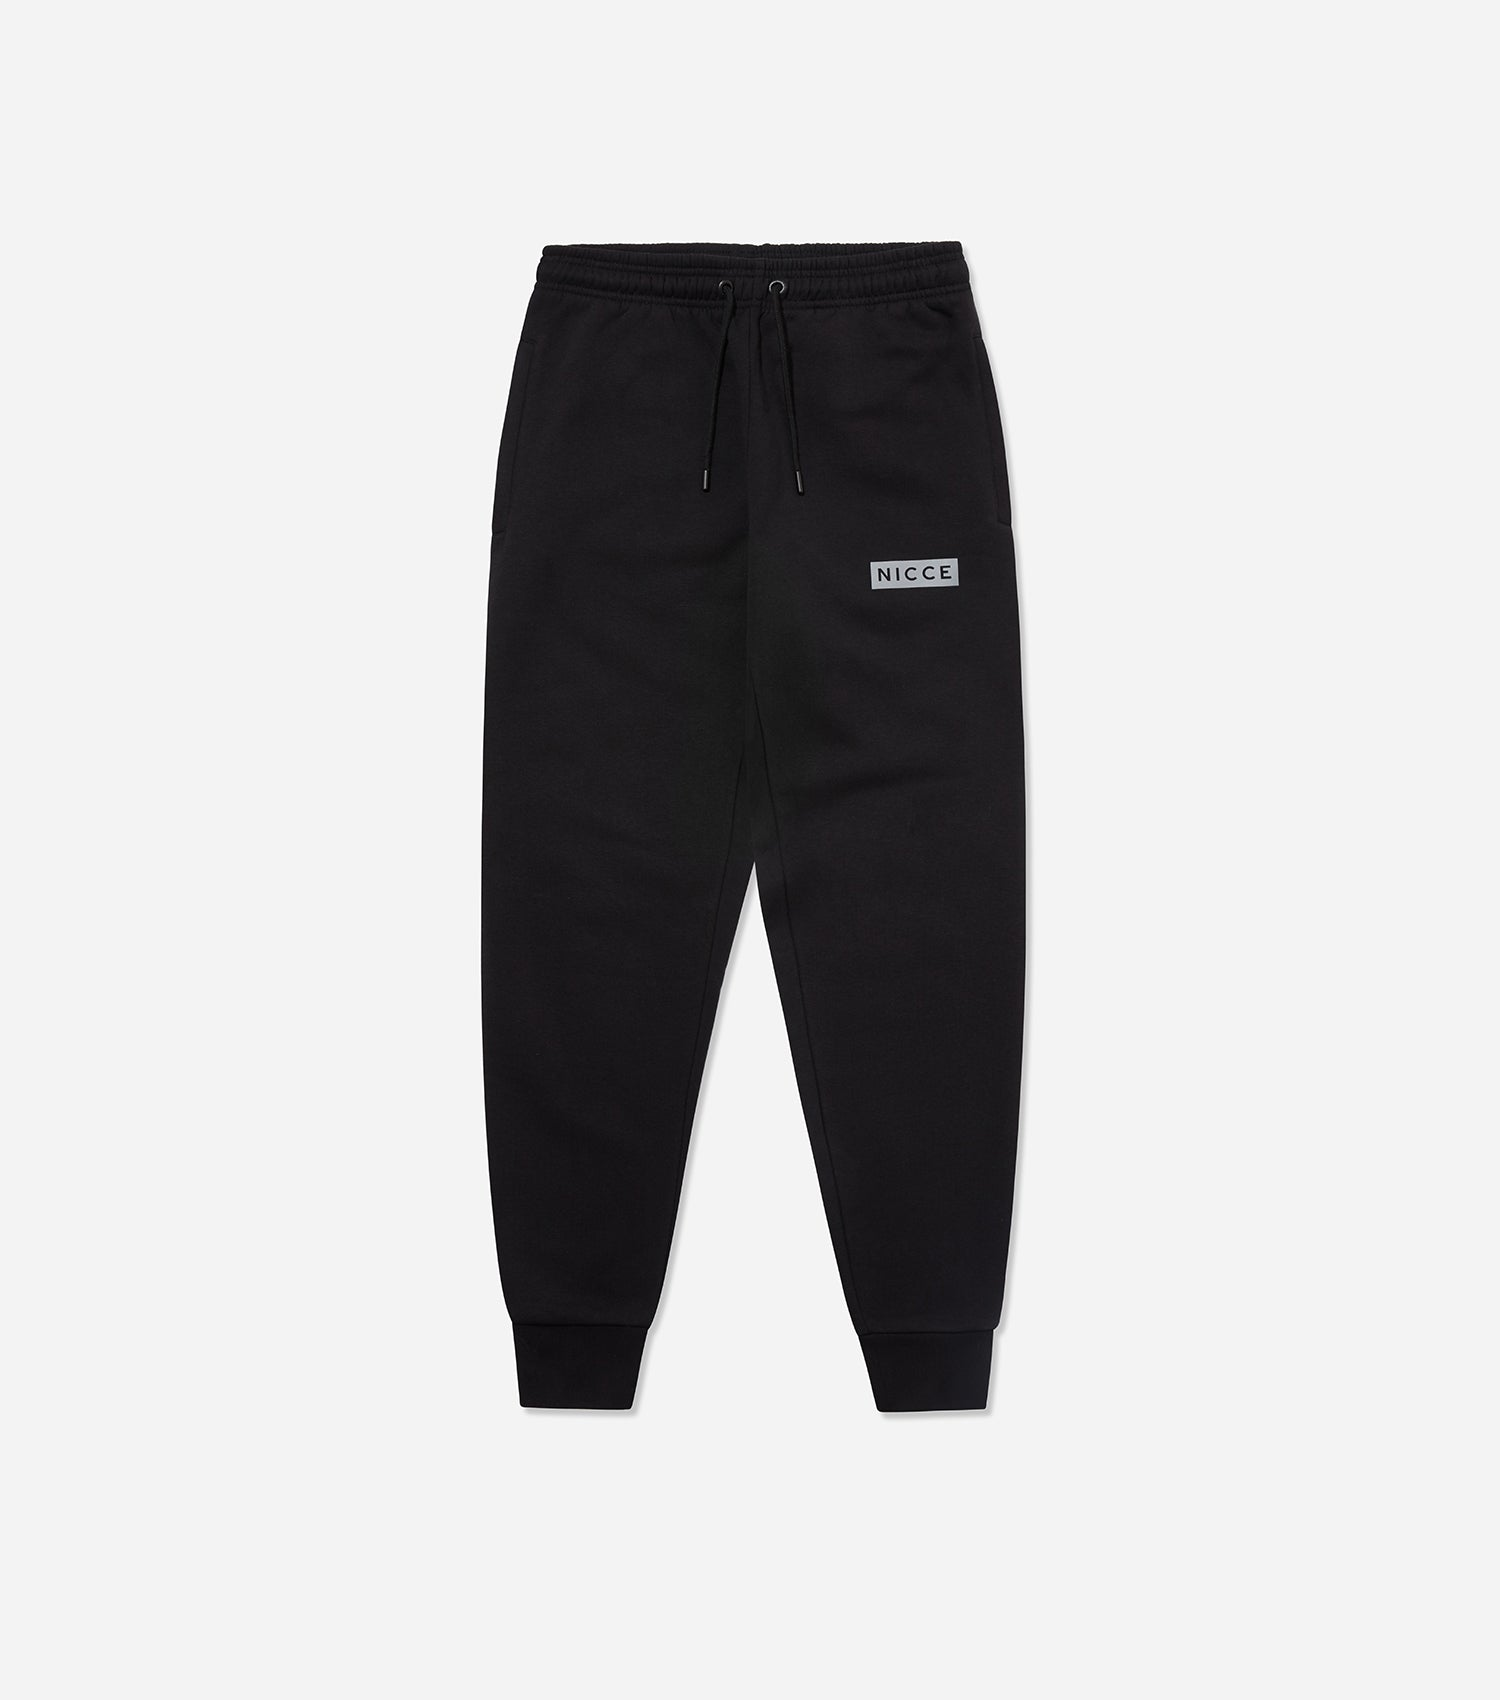 NICCE Mens Base Joggers | Black, Joggers